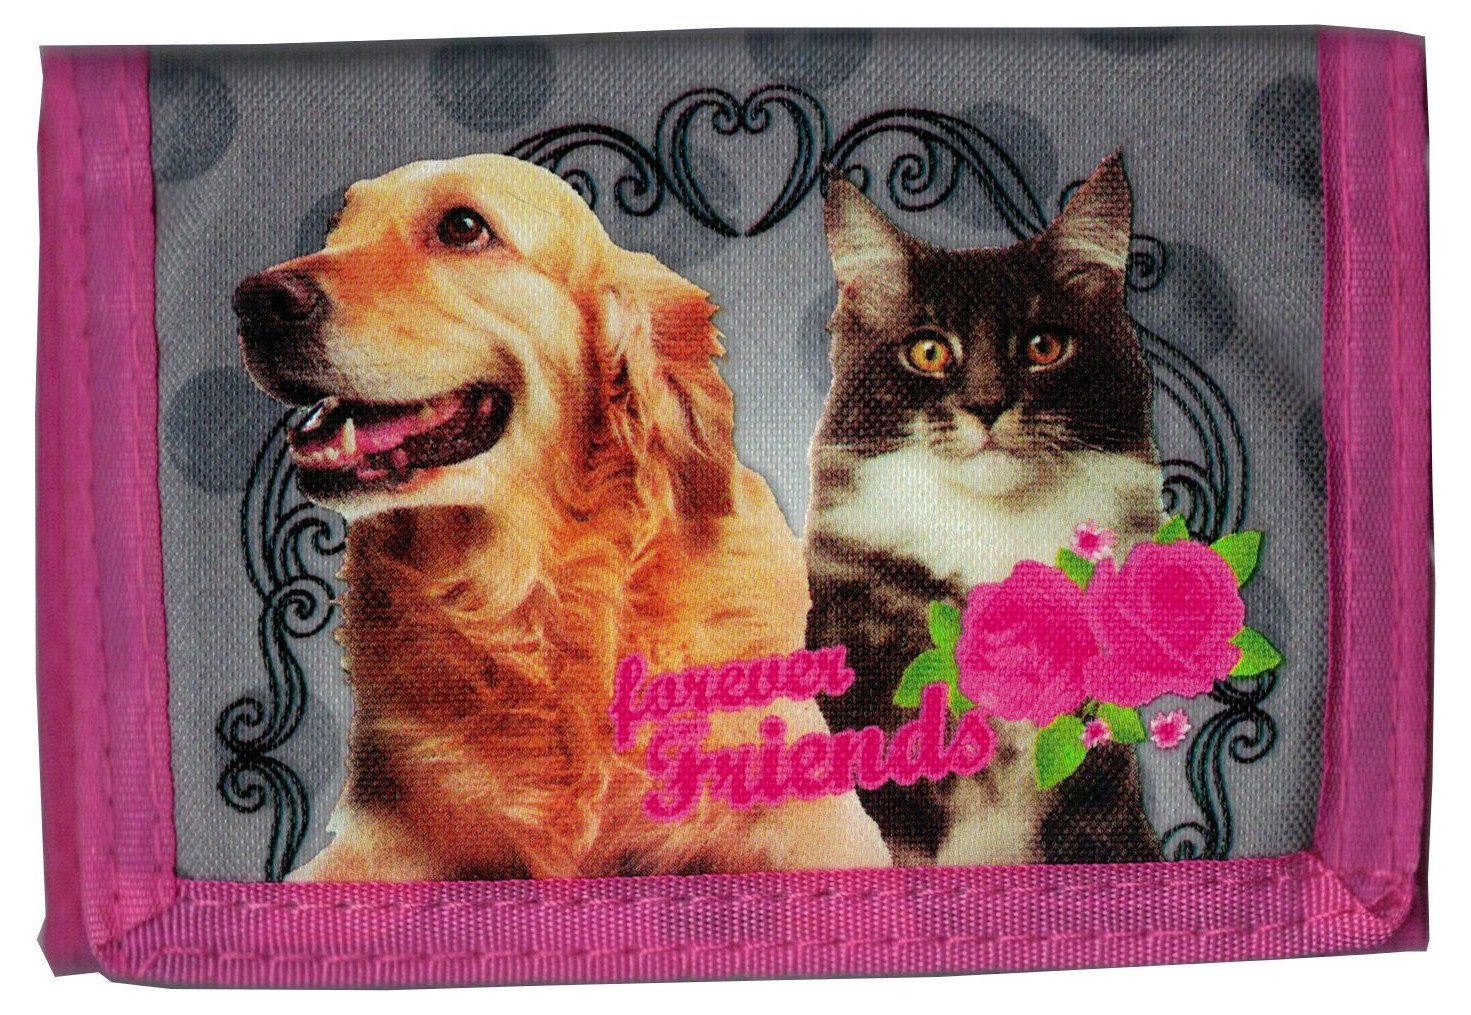 Dog & Cat - Cartera con monedero Wallet para niños - Amigos por siempre - Golden Retrievers - Cleo & Frank Company: Amazon.es: Equipaje